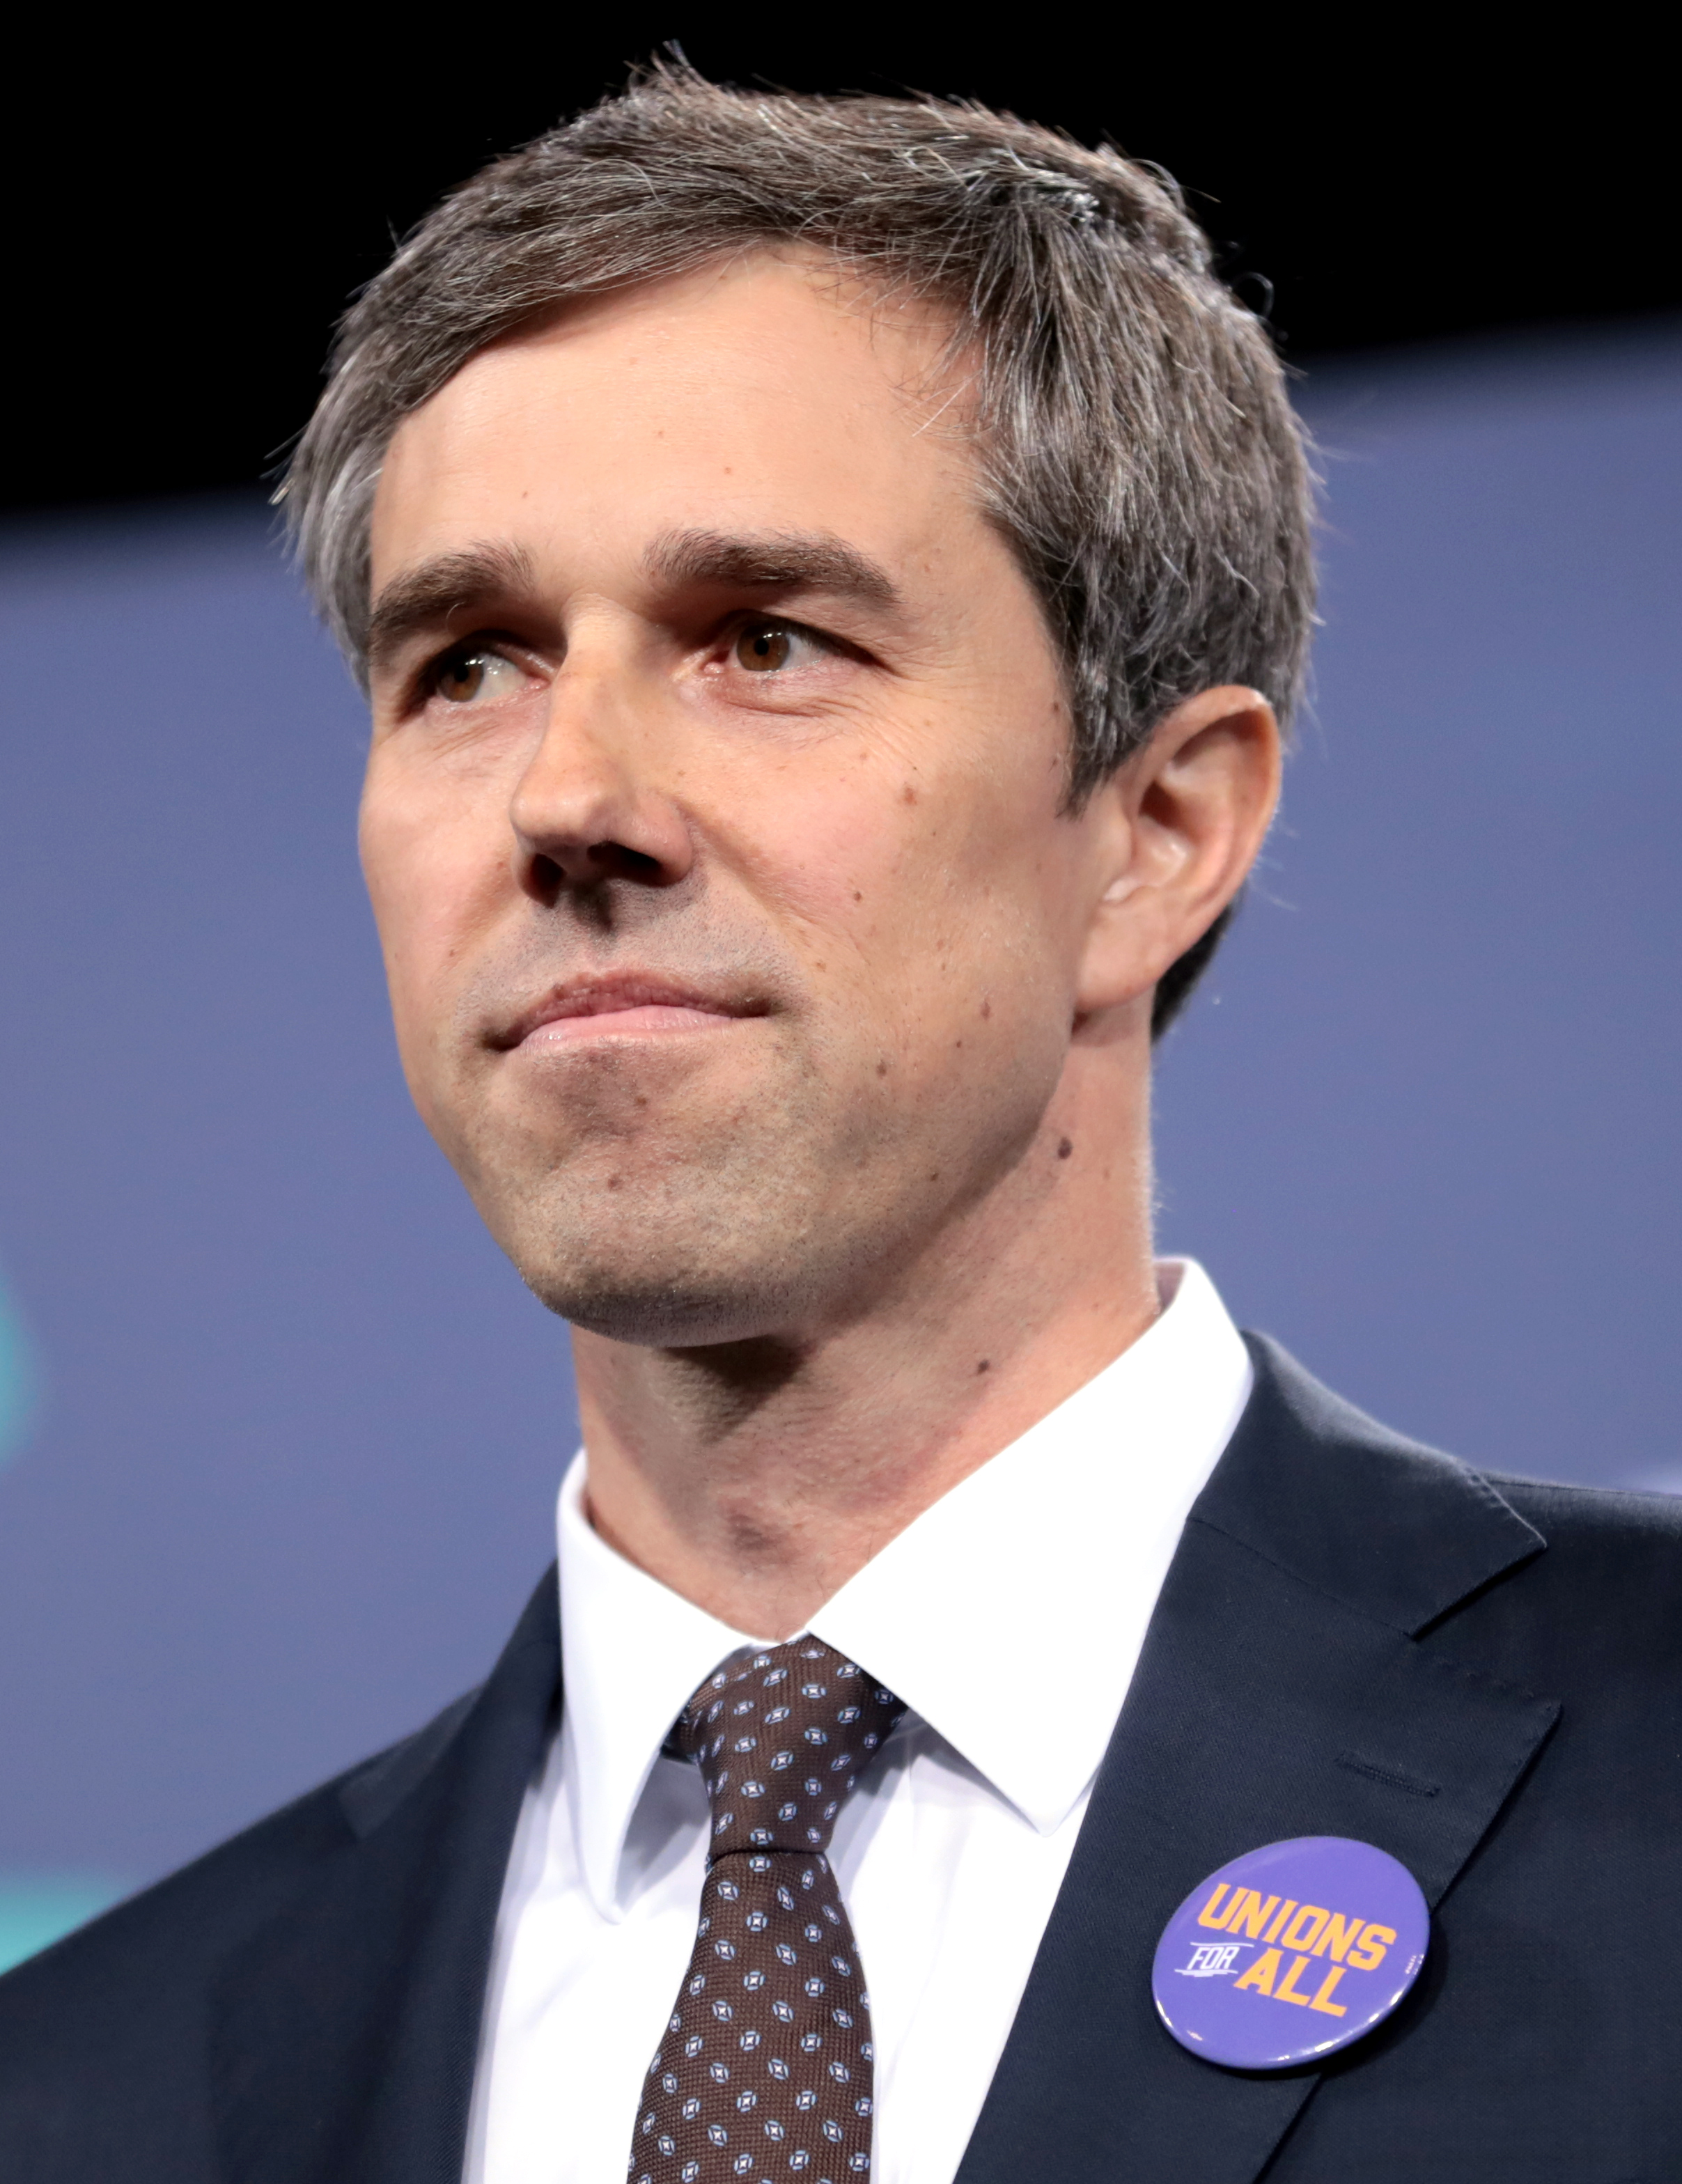 Senate Candidates Stake Out A Range Of Positions On >> Beto O Rourke Wikipedia